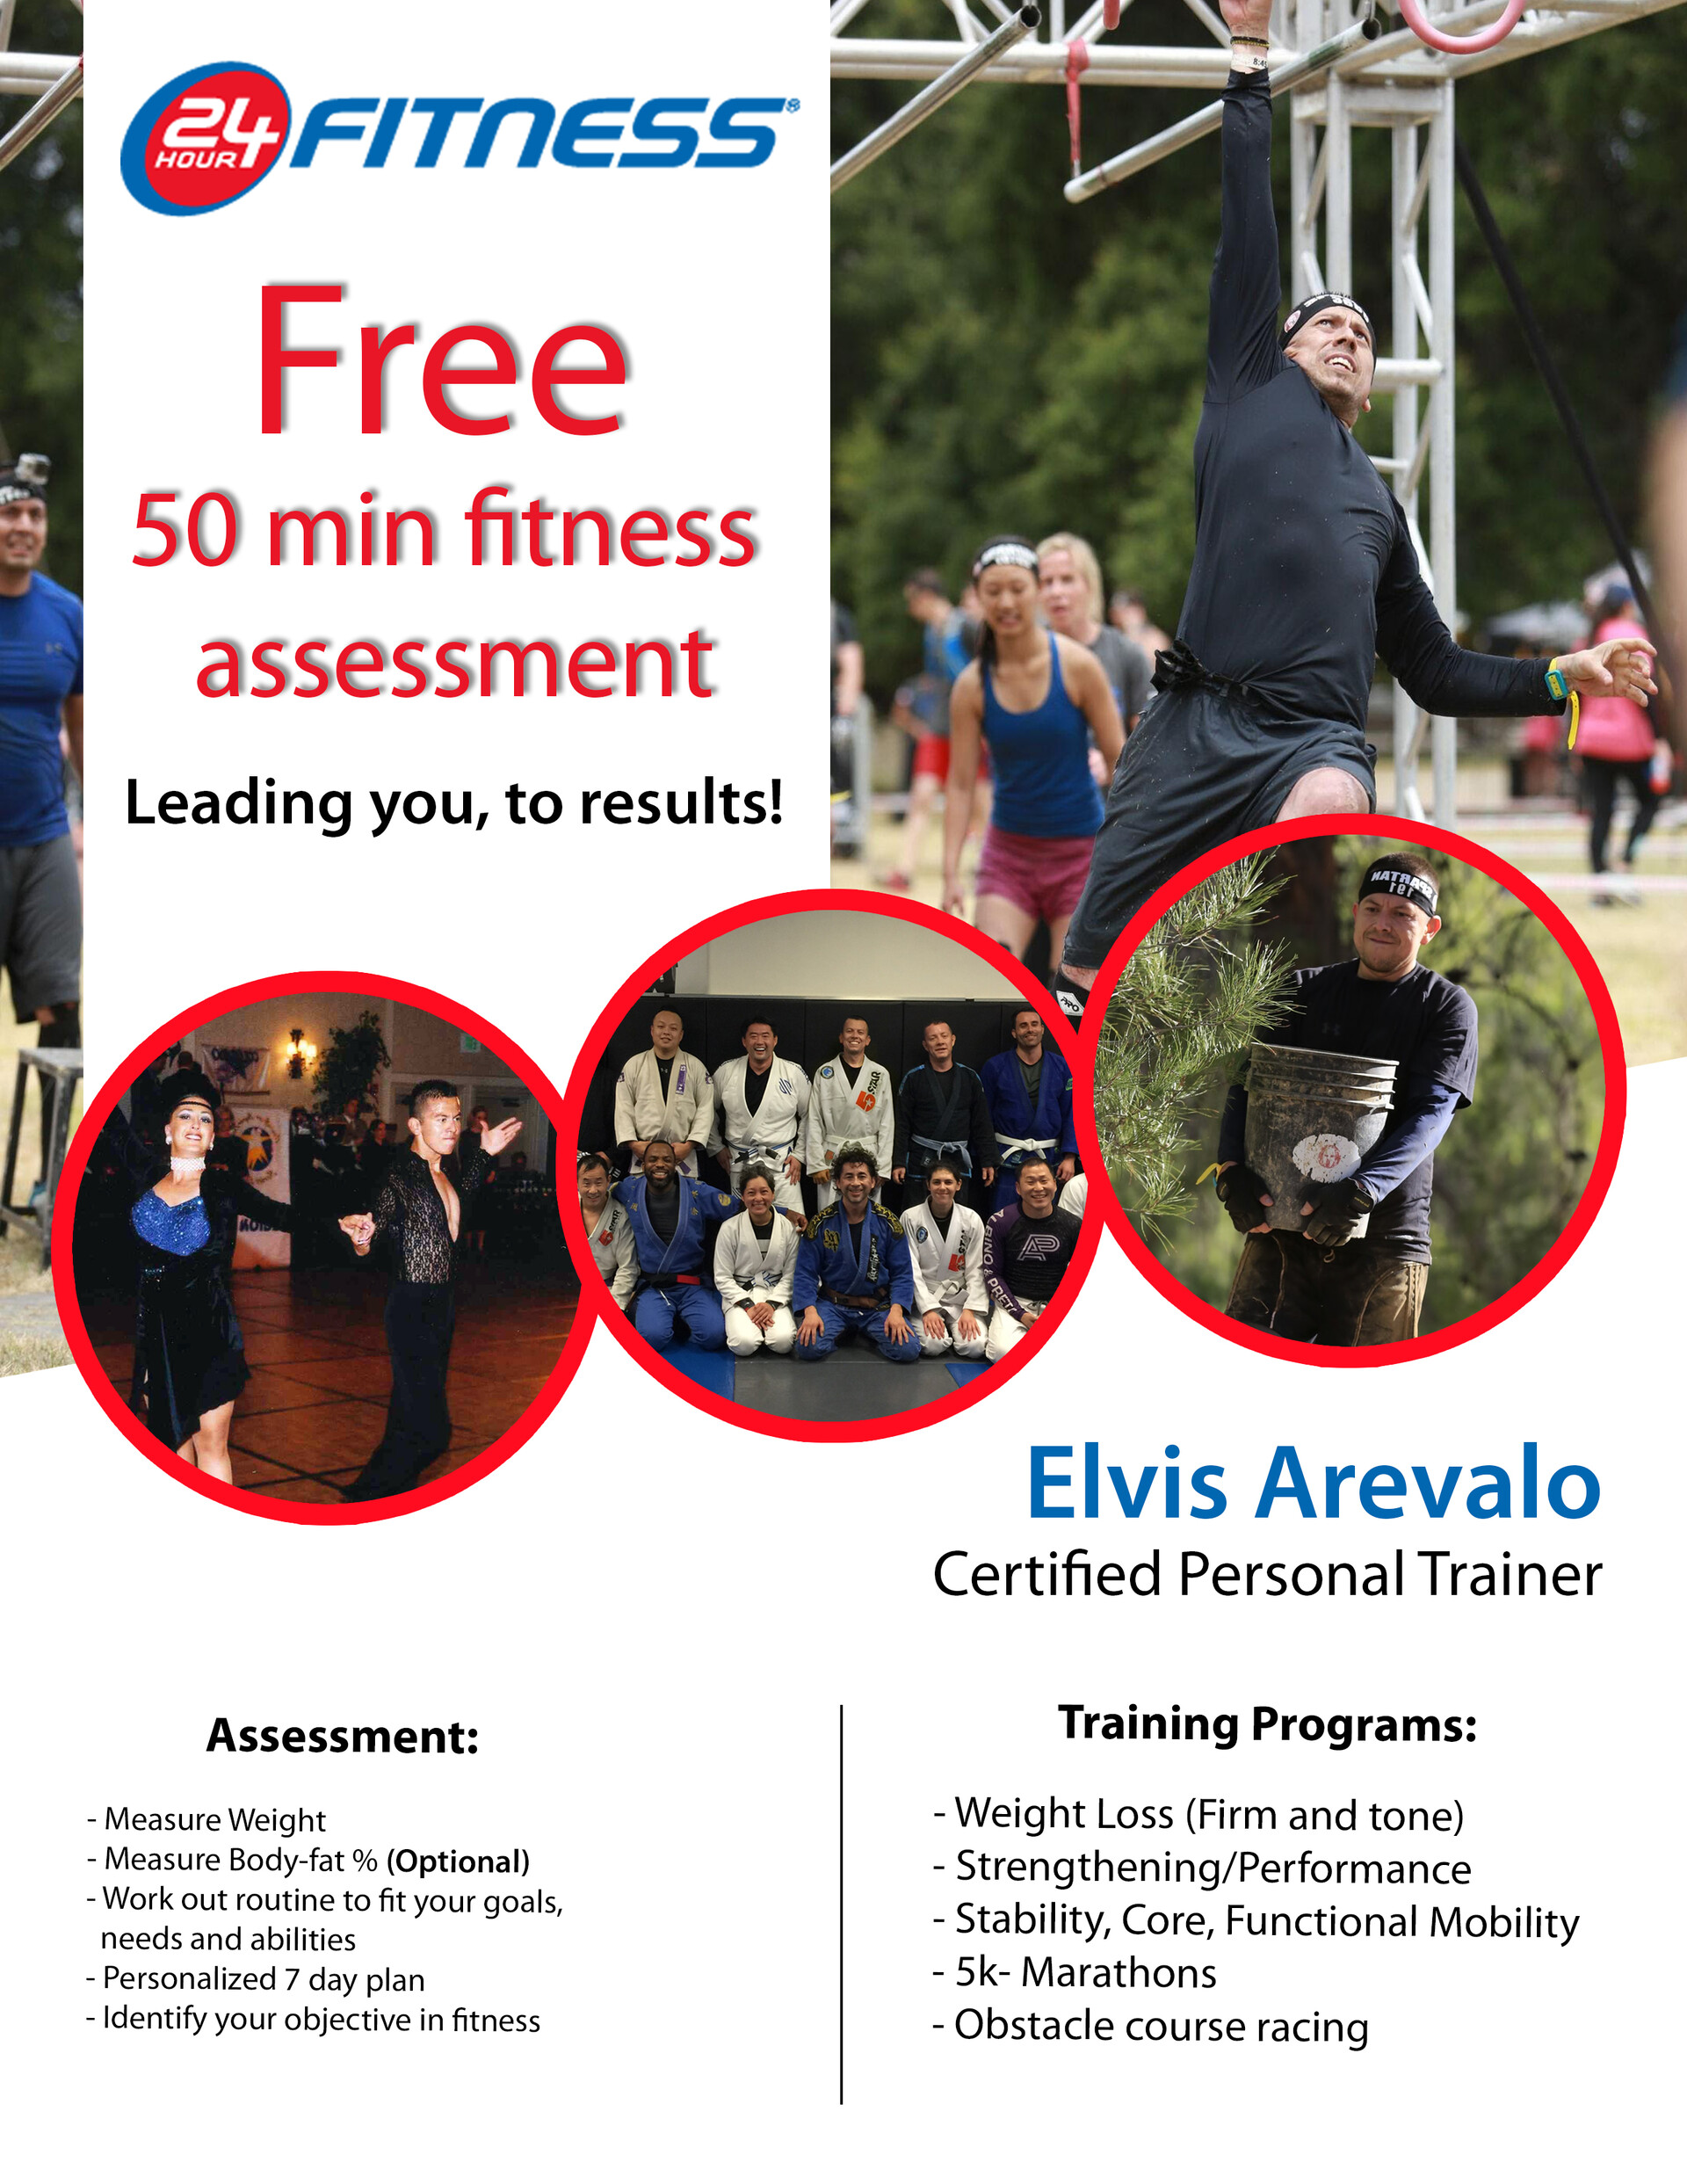 Personal trainer Promotional Brochure for 24 hour fitness